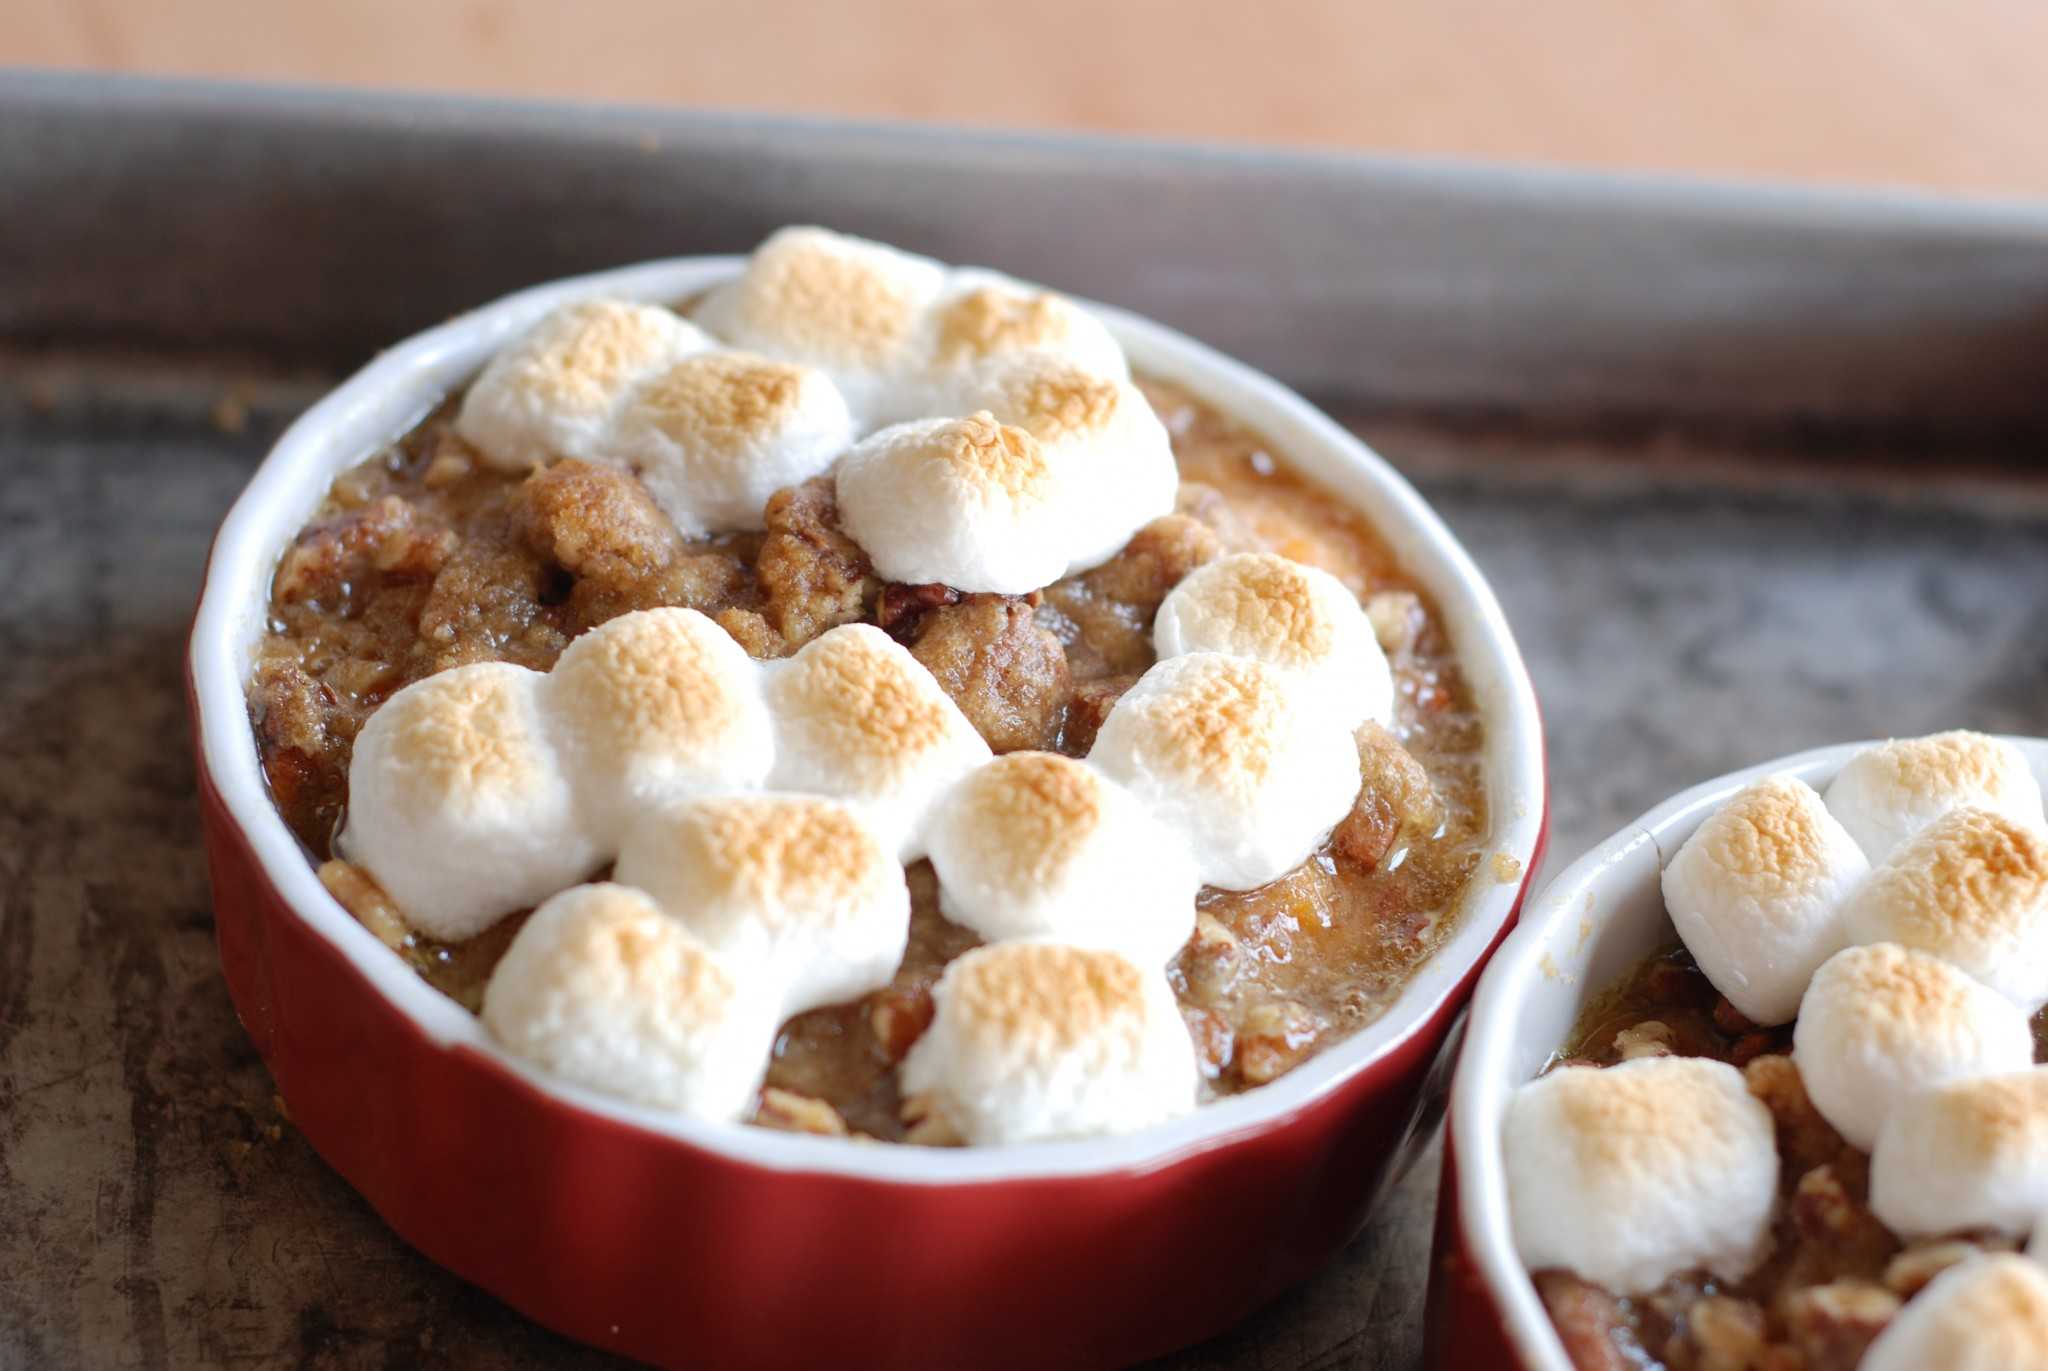 I never liked sweet potatoes for Thanksgiving, until I tried this recipe - Praline Sweet Potatoes with Toasted Marshmallows is the best!